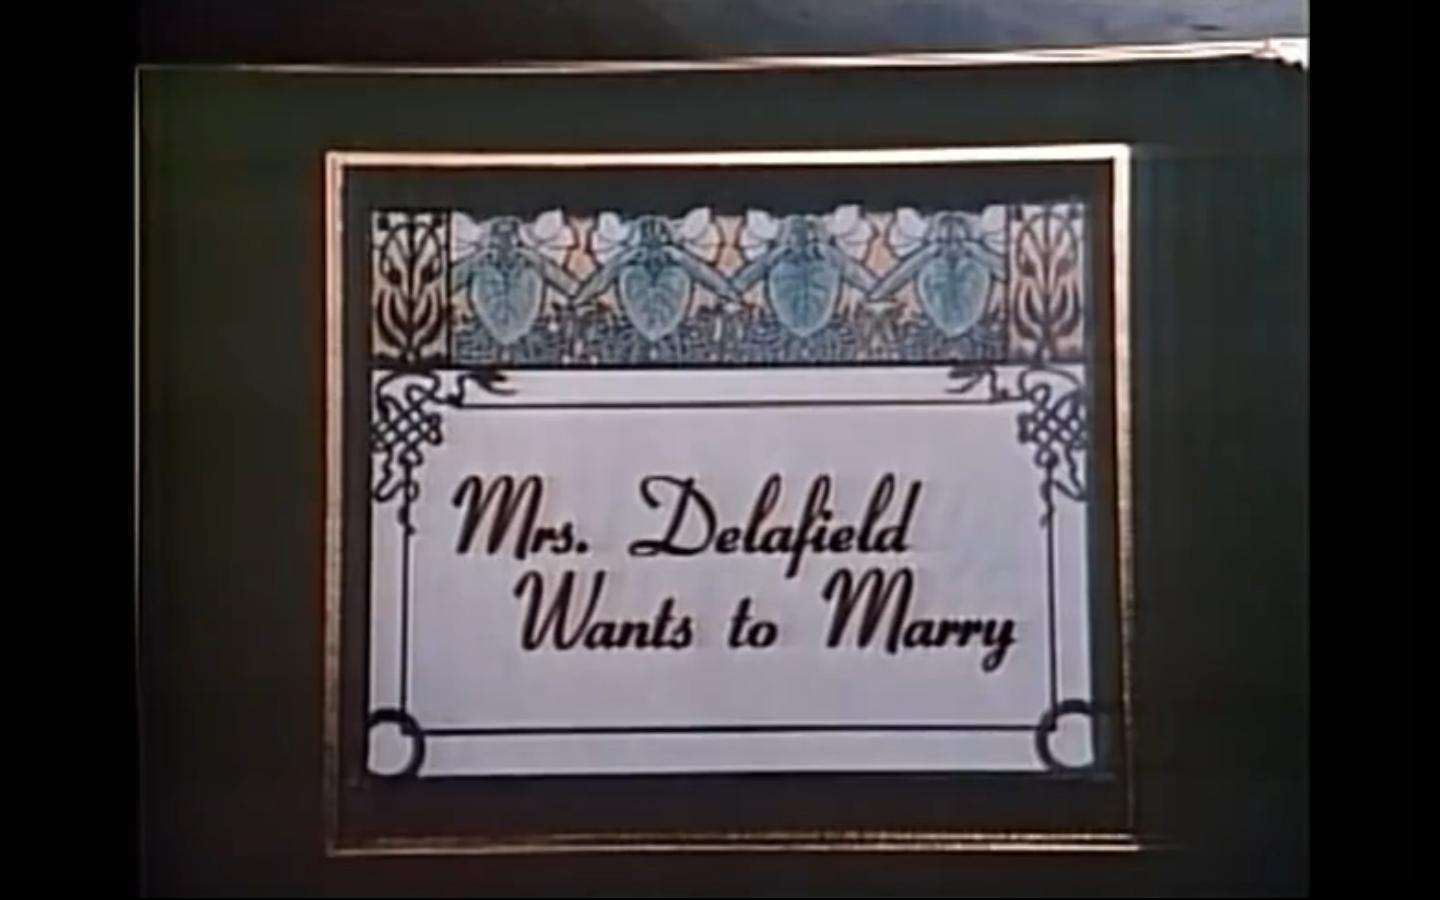 Mrs Delafield Wants To Marry 1986